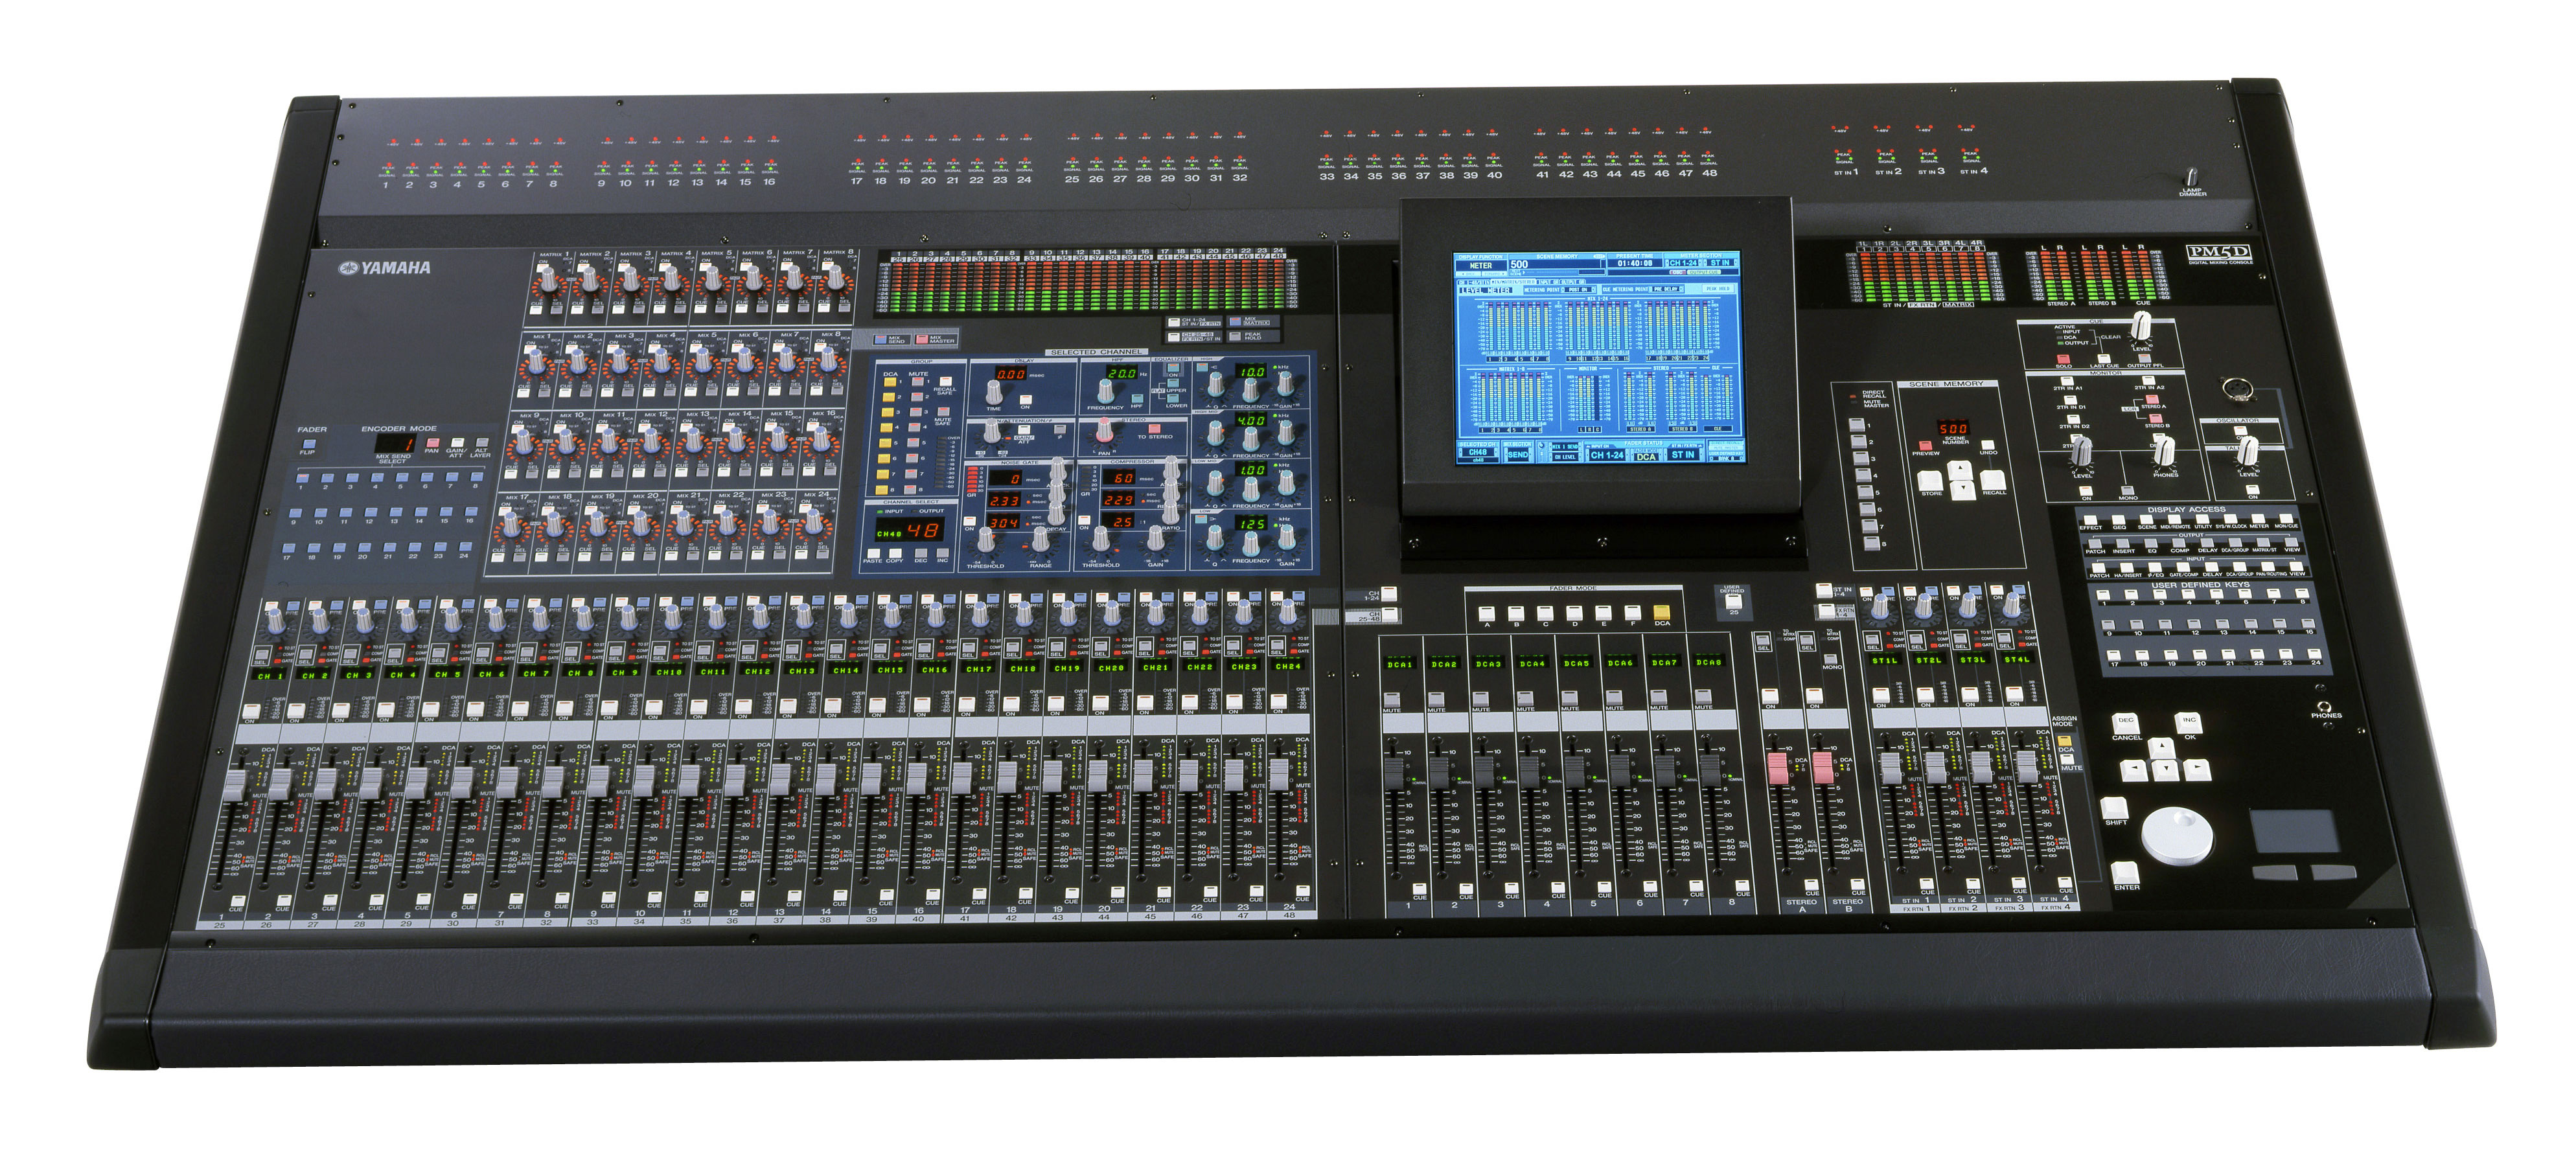 Yamaha pm5d s rie pro music s r o for Yamaha commercial audio